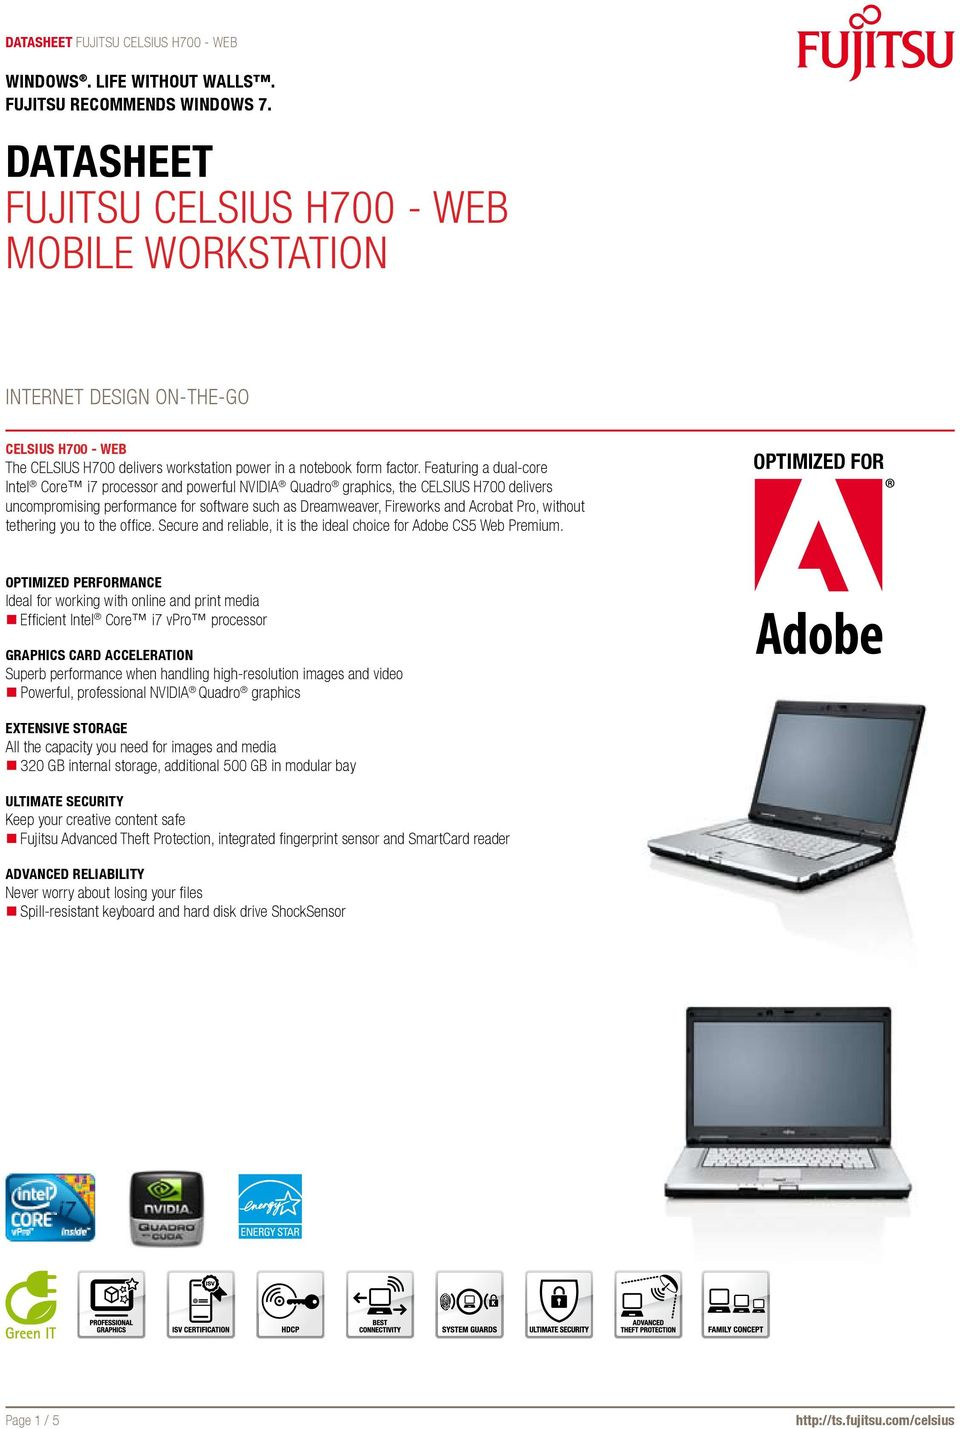 without tethering you to the office. Secure and reliable, it is the ideal choice for Adobe CS5 Web Premium.